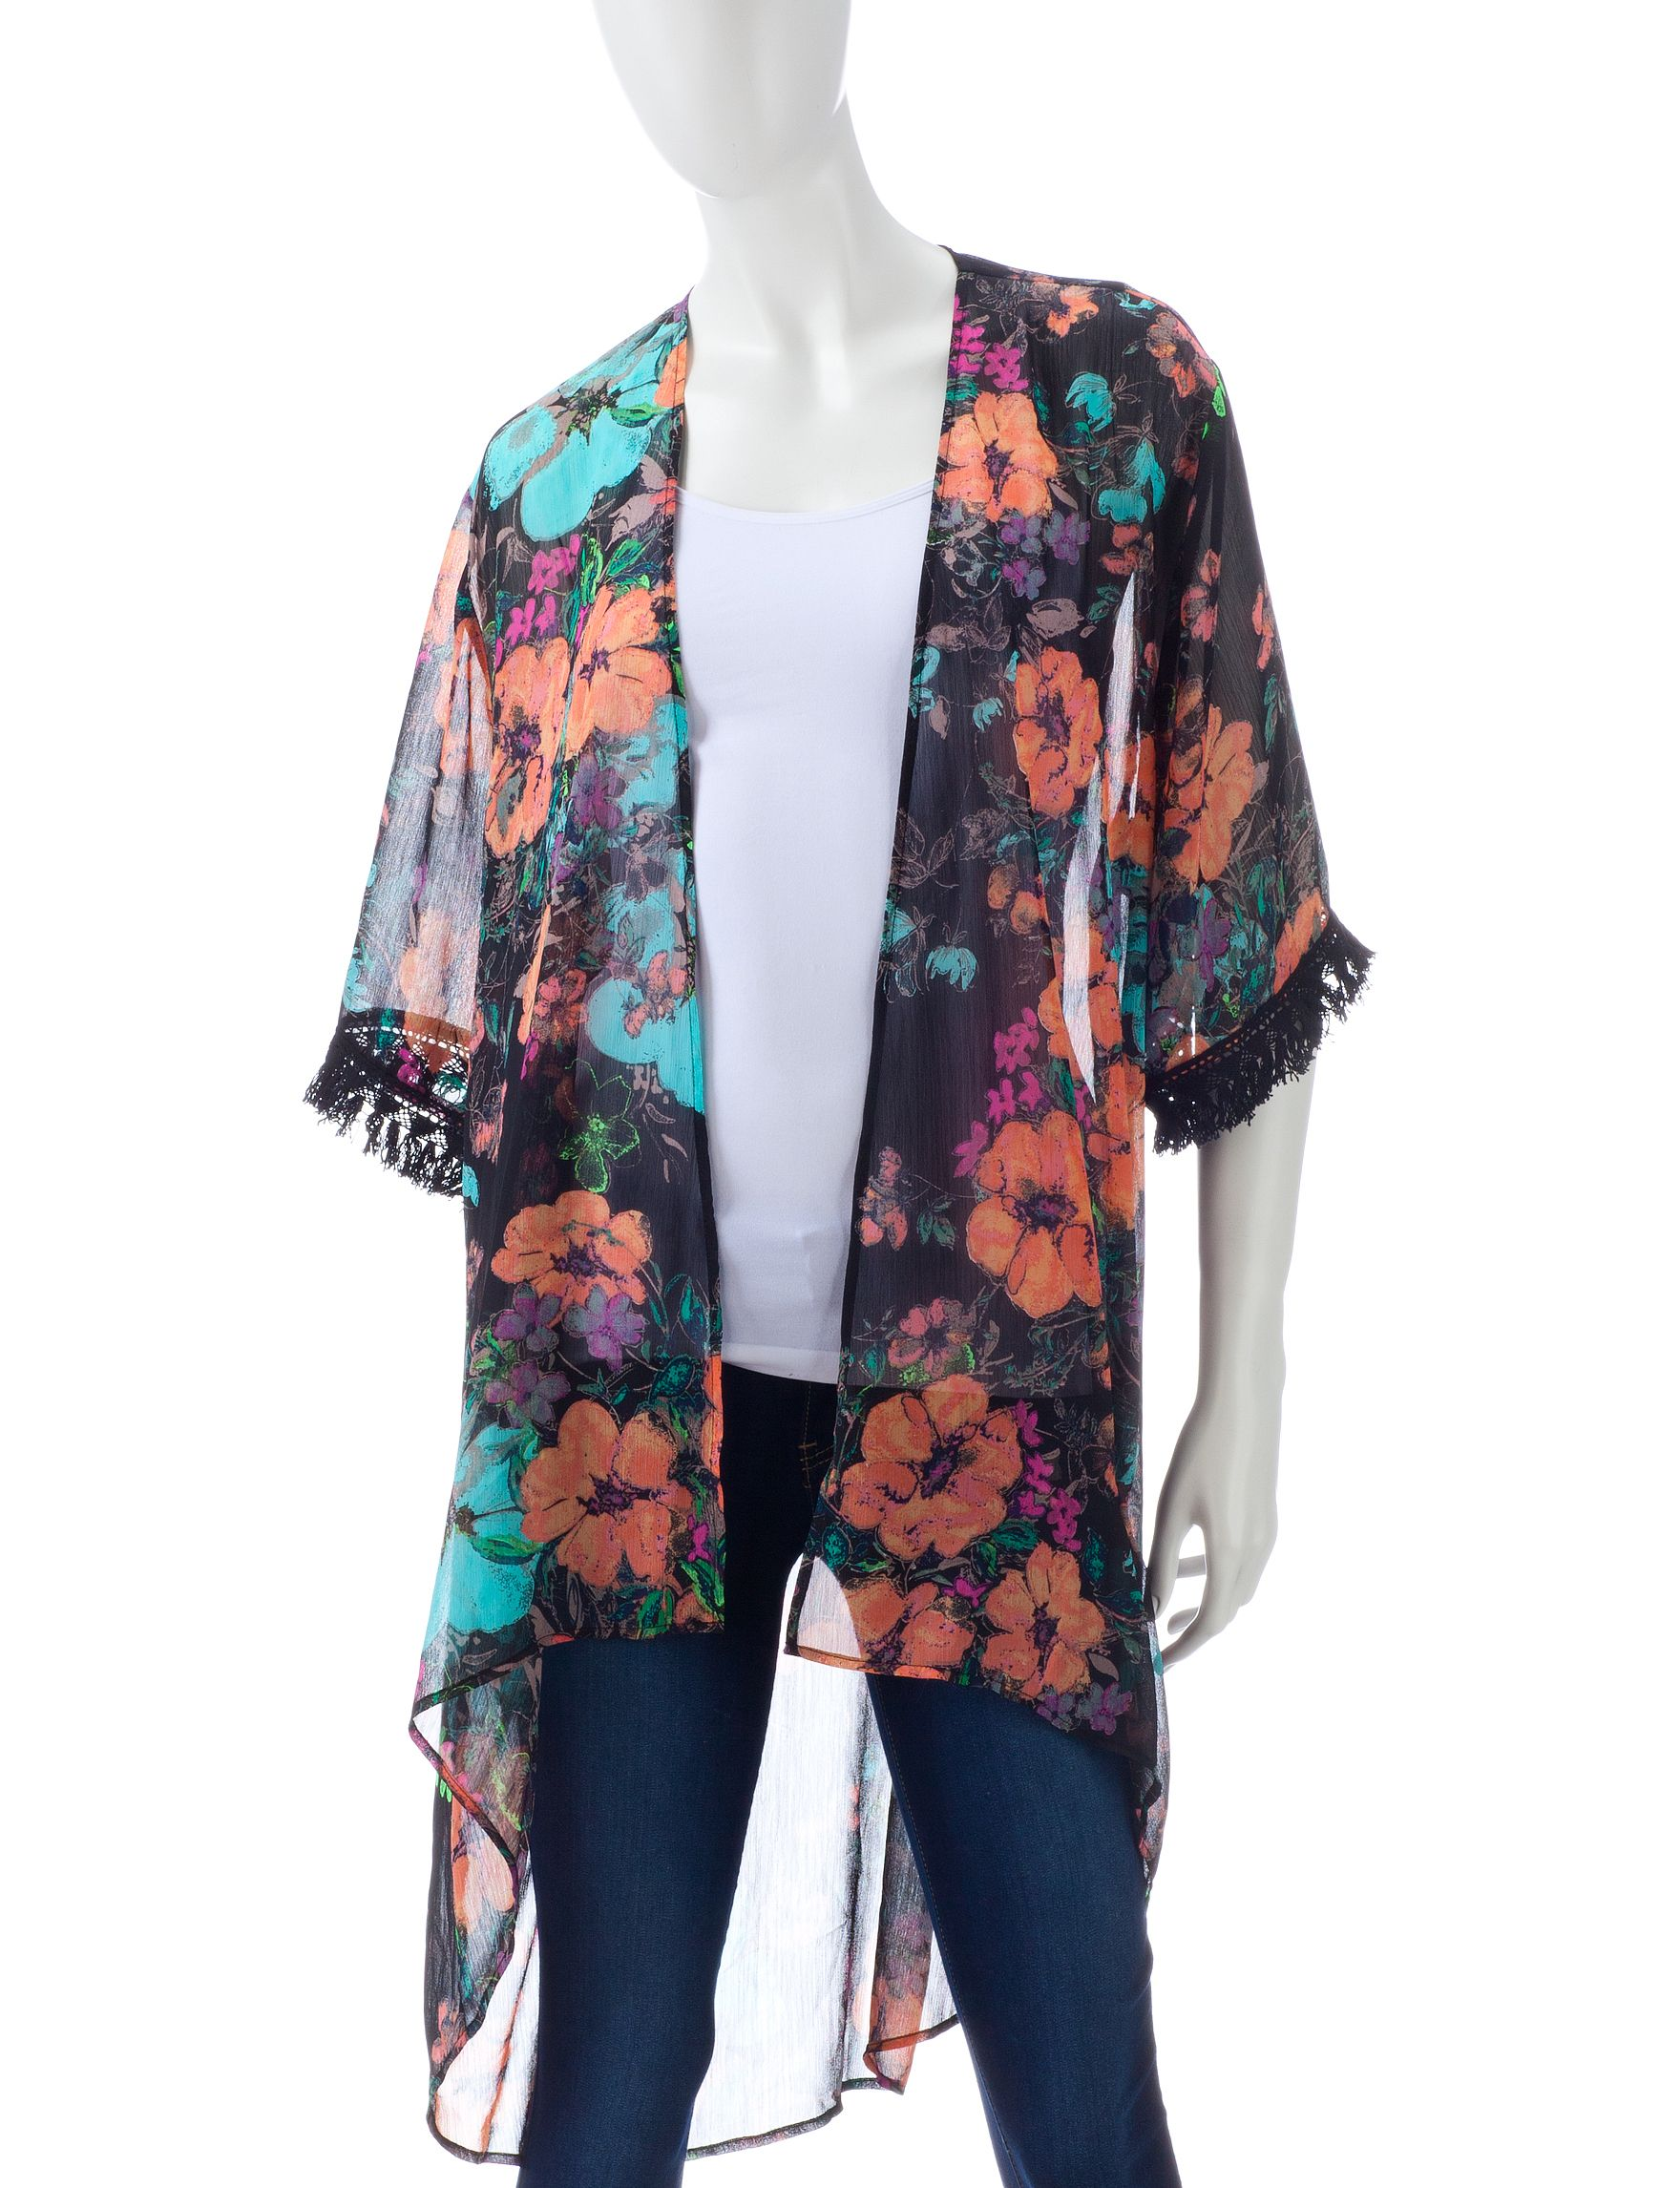 Shop today for Wishful Park Floral Fringe Kimono Top – Juniors  & deals on Blouses! Official site for Stage, Peebles, Goodys, Palais Royal & Bealls.